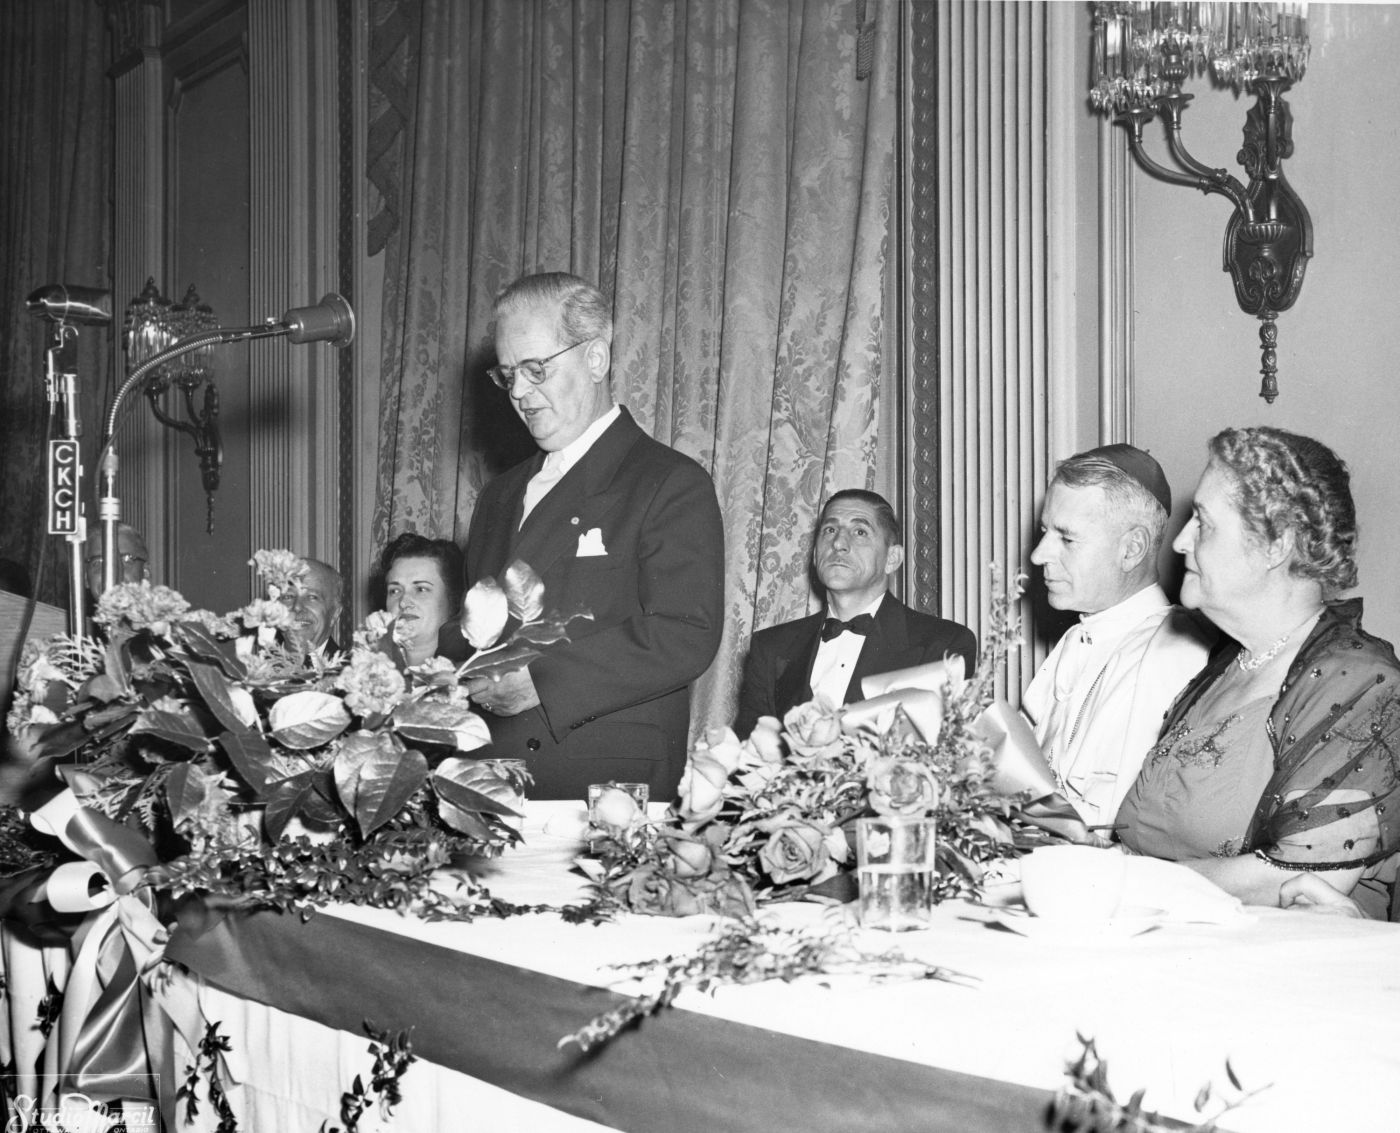 Black and white photograph of a mature man in a suit and tie, standing and talking into a microphone at a decorated table. A woman is seated to his right. Sitting to his left: a man, a cleric wearing a skullcap, and another woman.